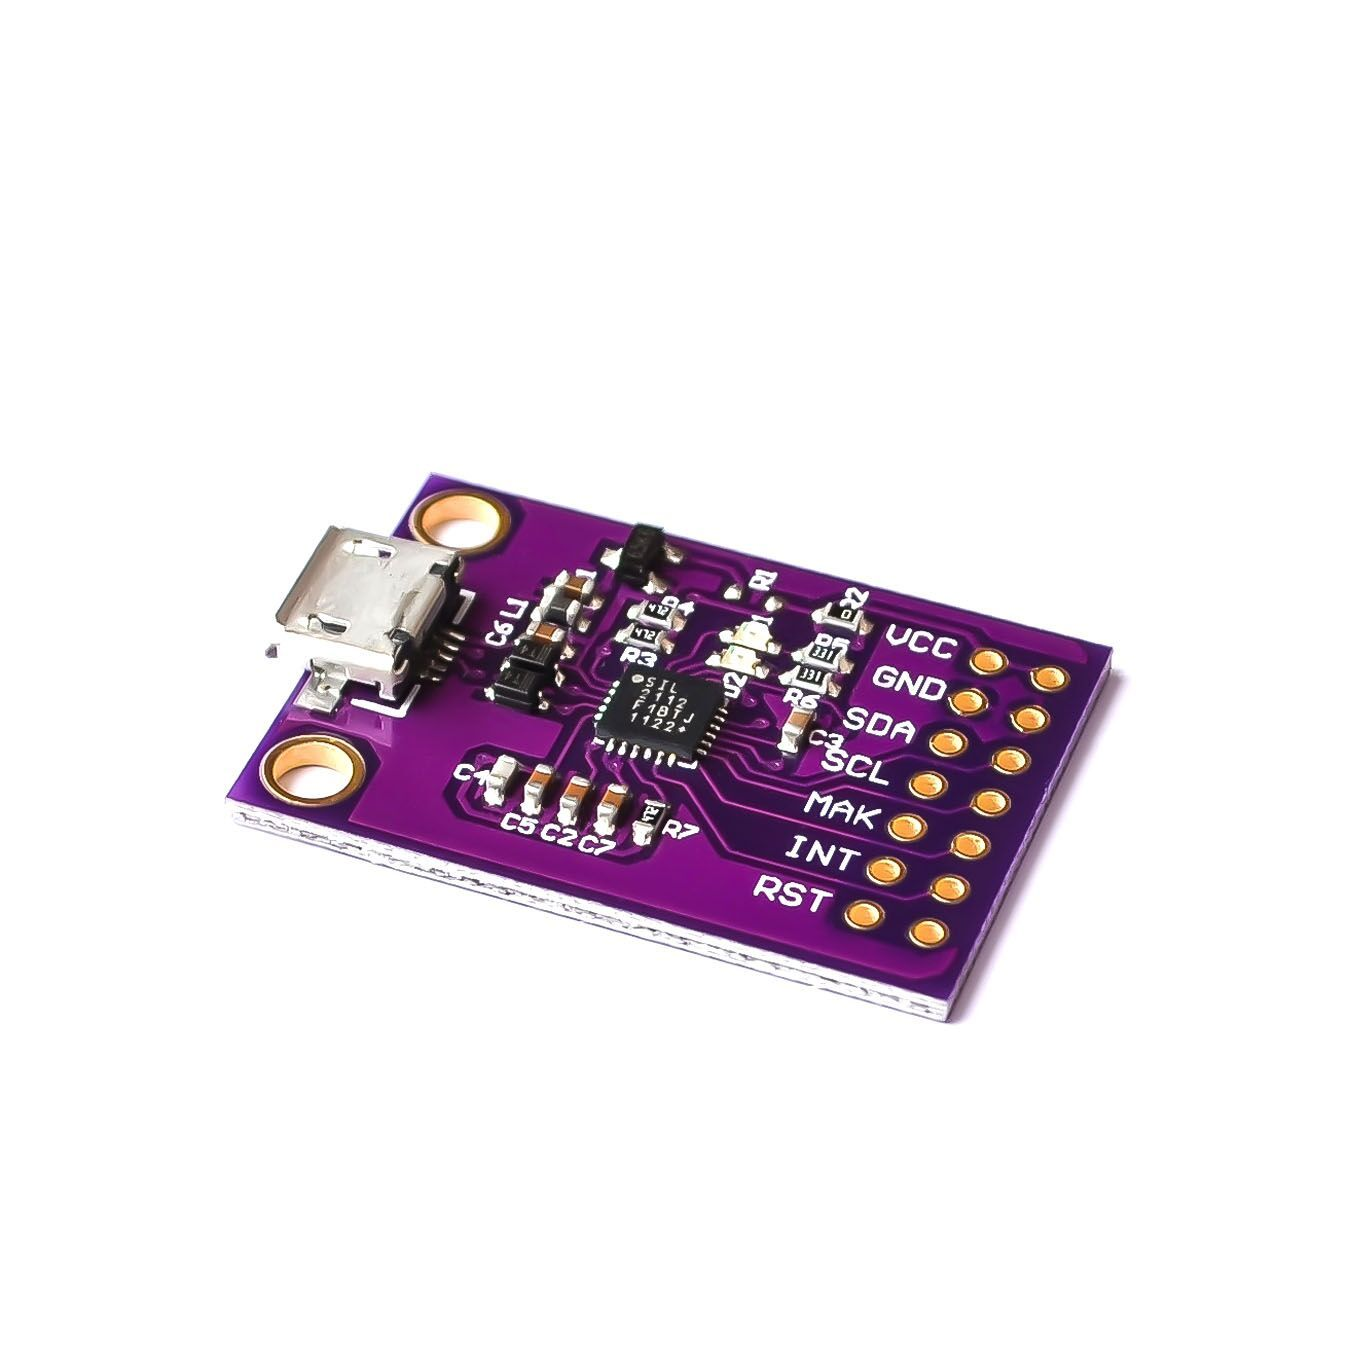 2112 CP2112 Evaluation kit for the CCS811 Debug board USB to I2C communication